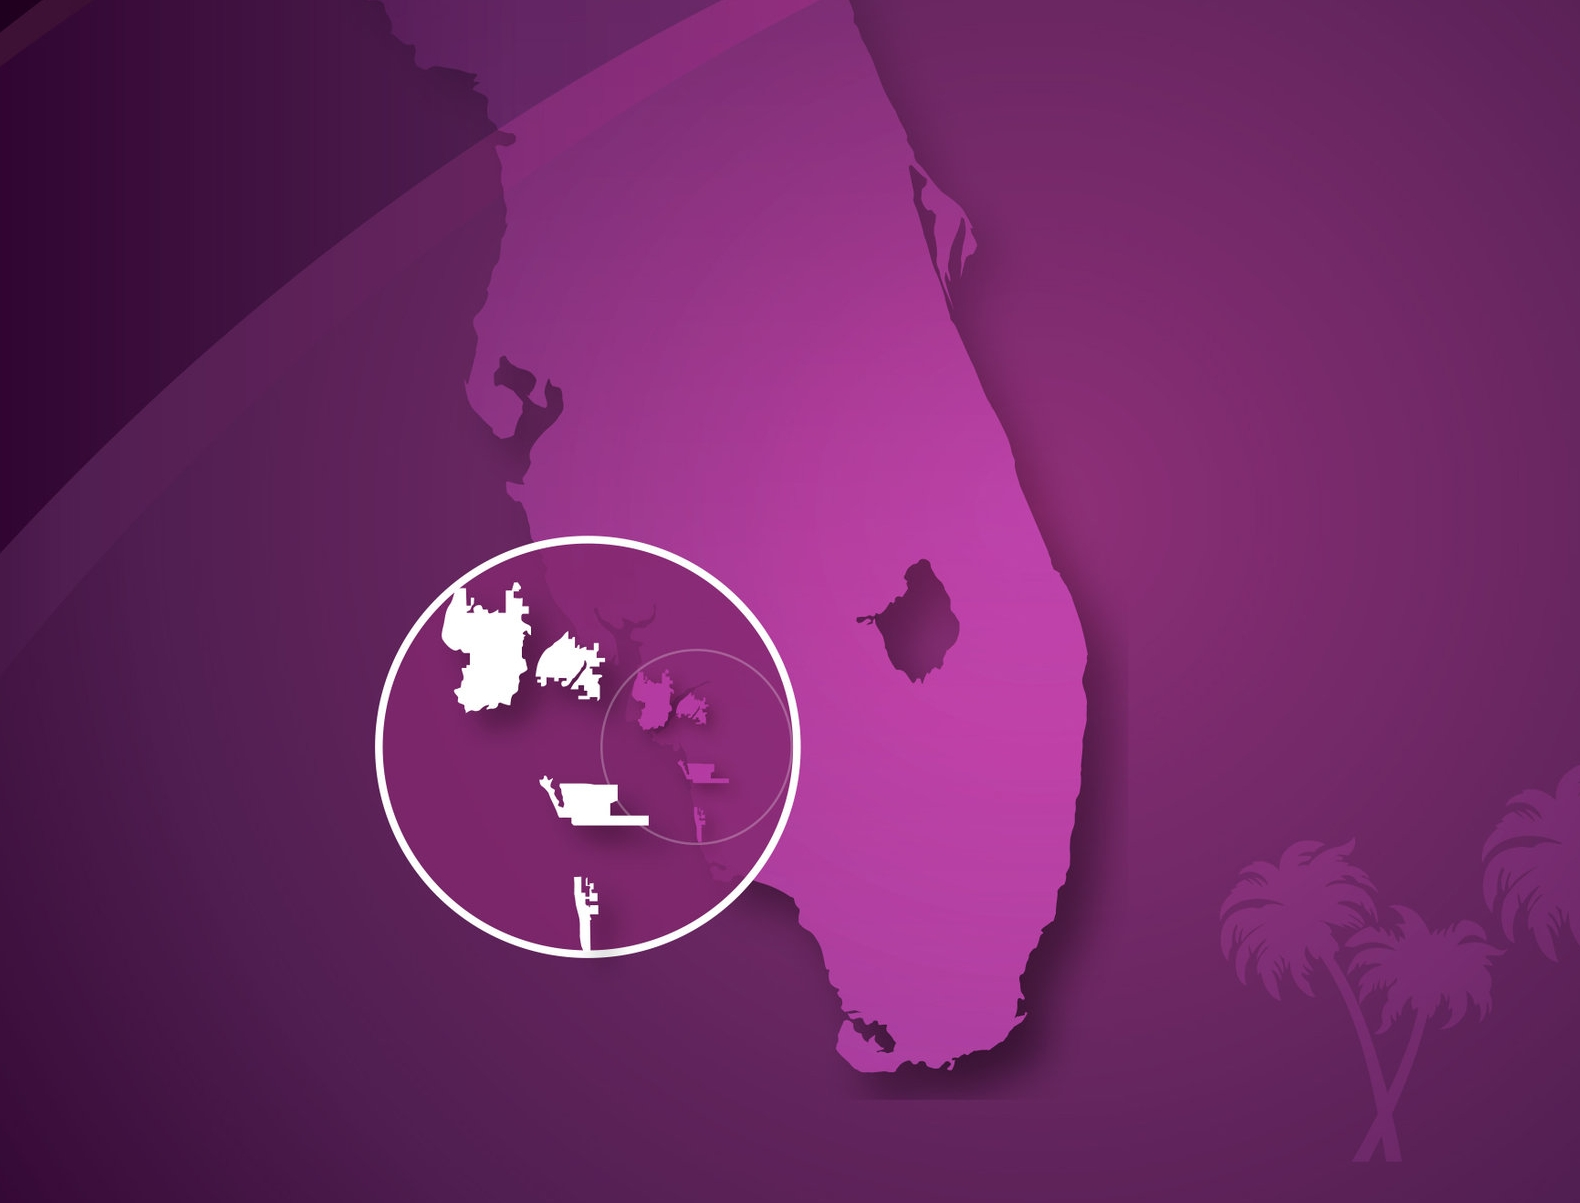 YOUR REAL ESTATE PARTNERS SERVING THE COMMUNITIES OF BONITA SPRINGS,CAPE CORAL,FORT MYERS ANDNAPLES. -